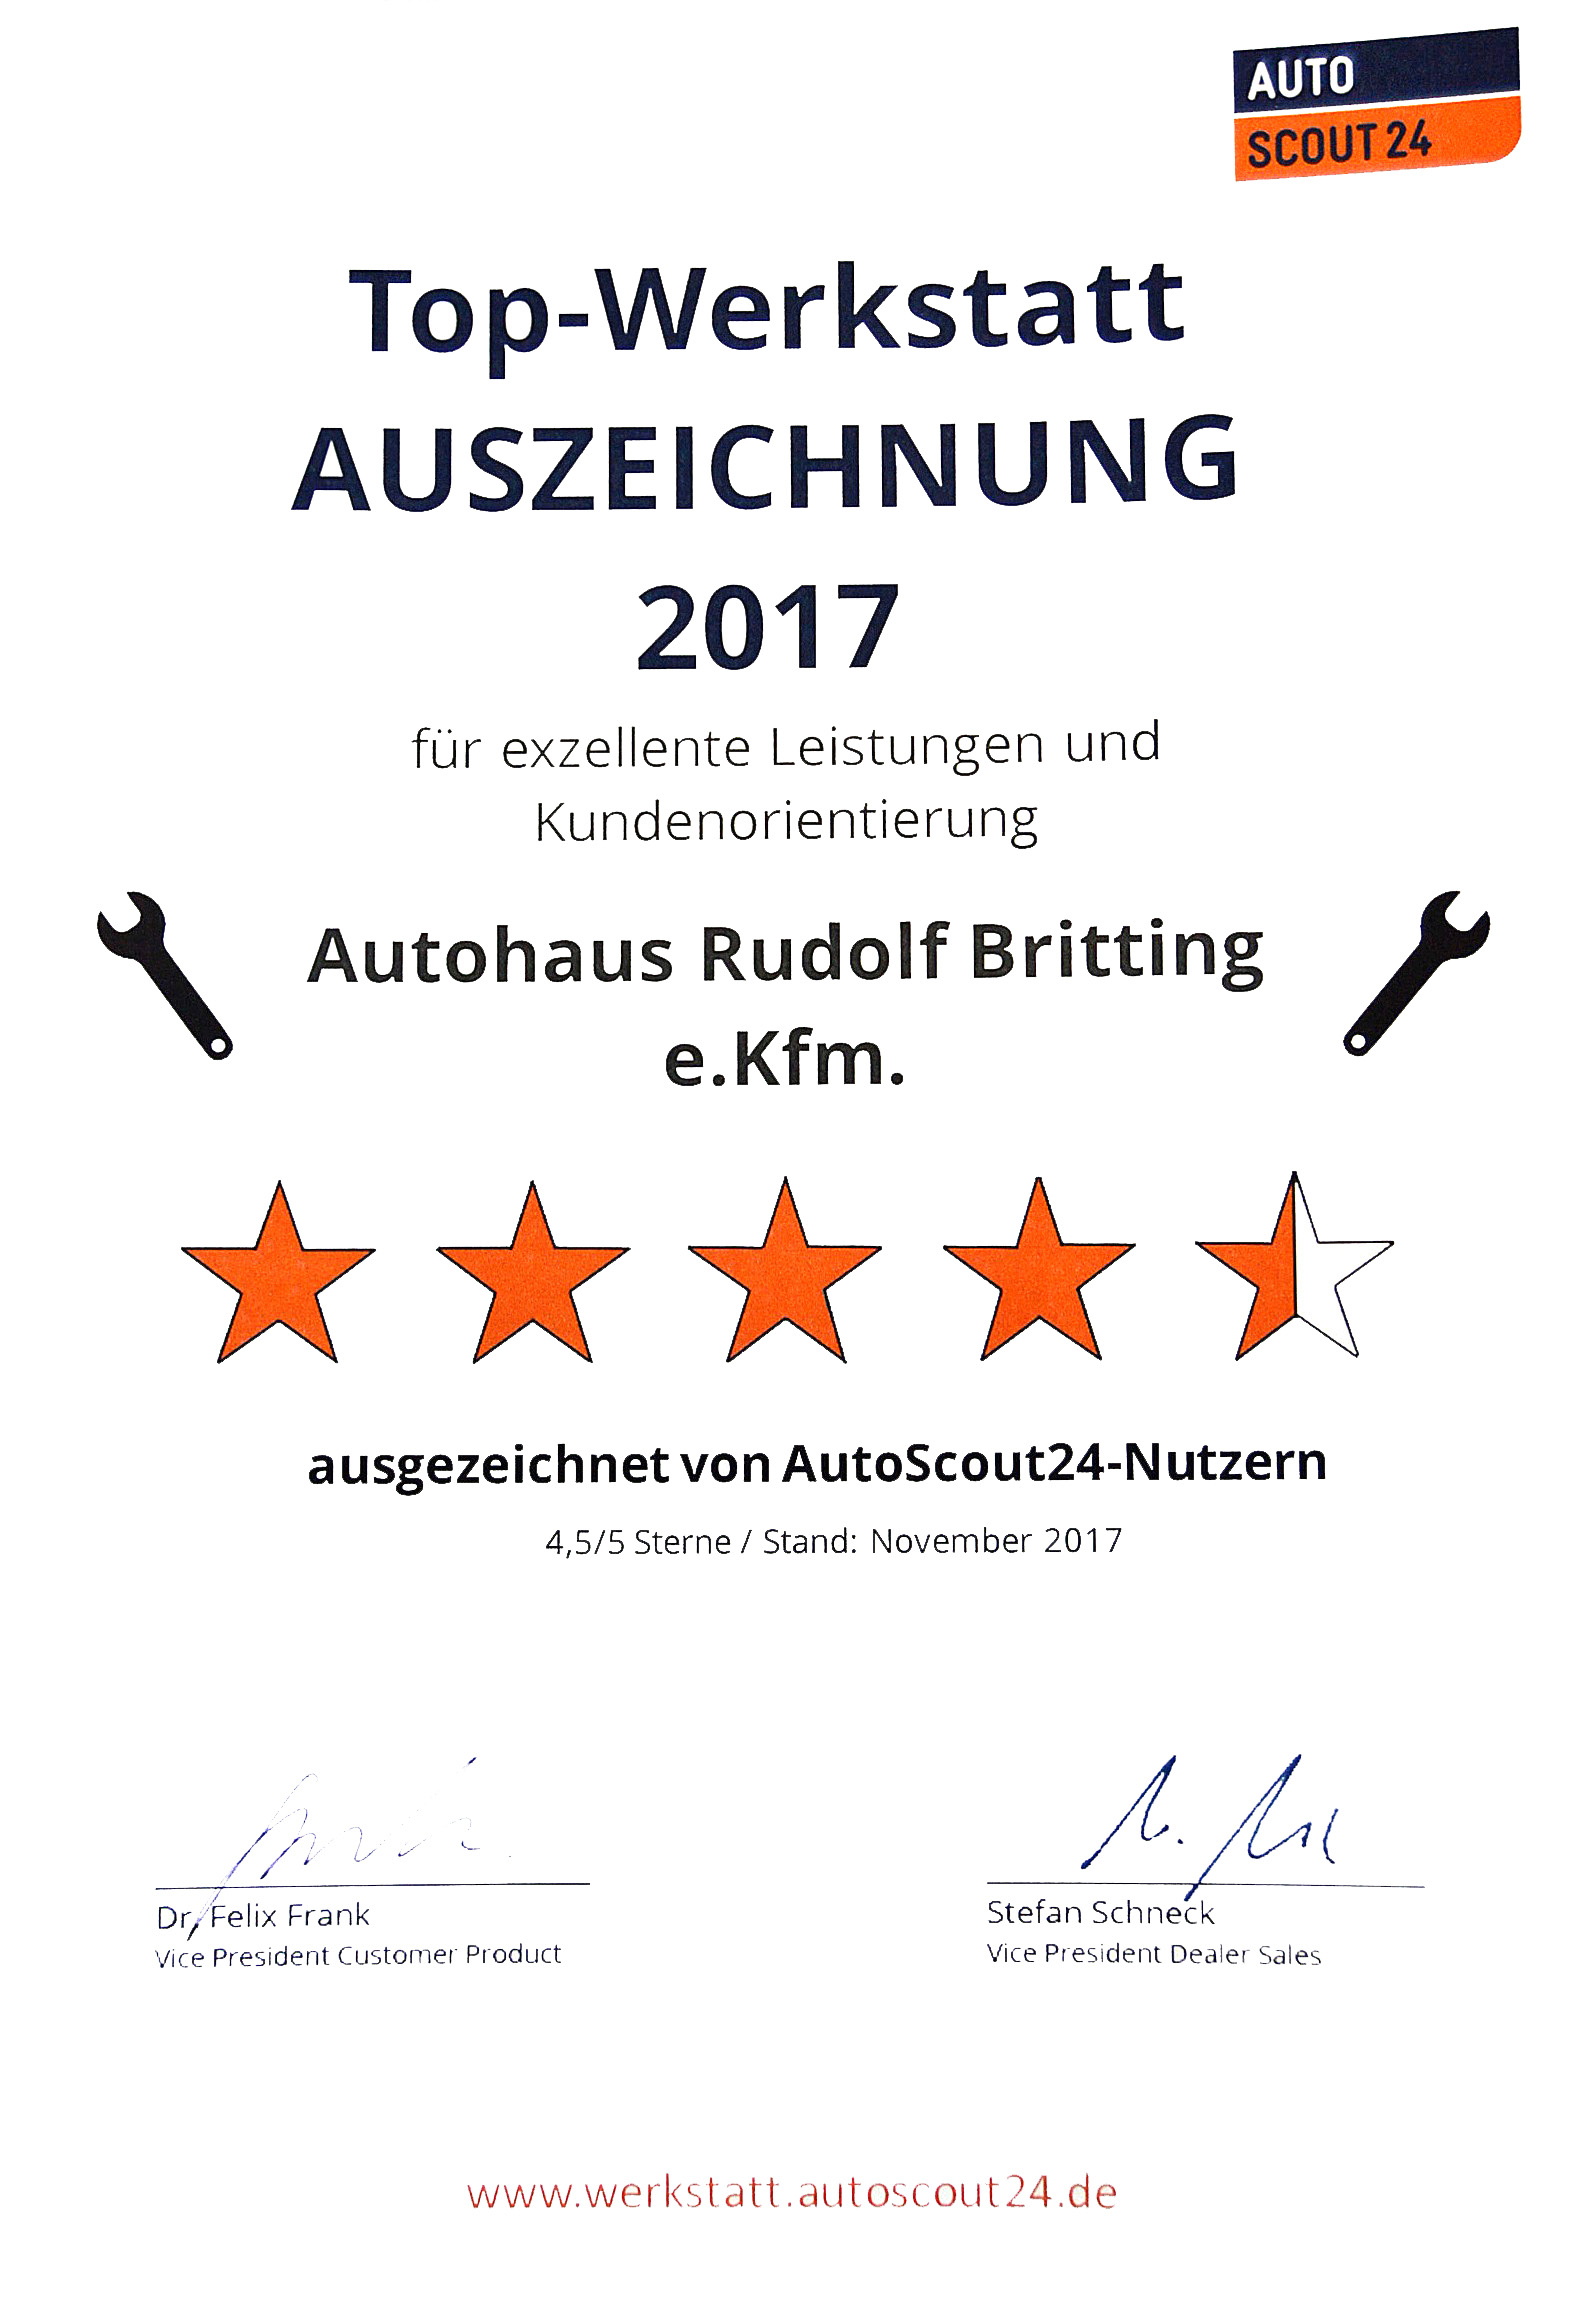 autoscout2017Wkst